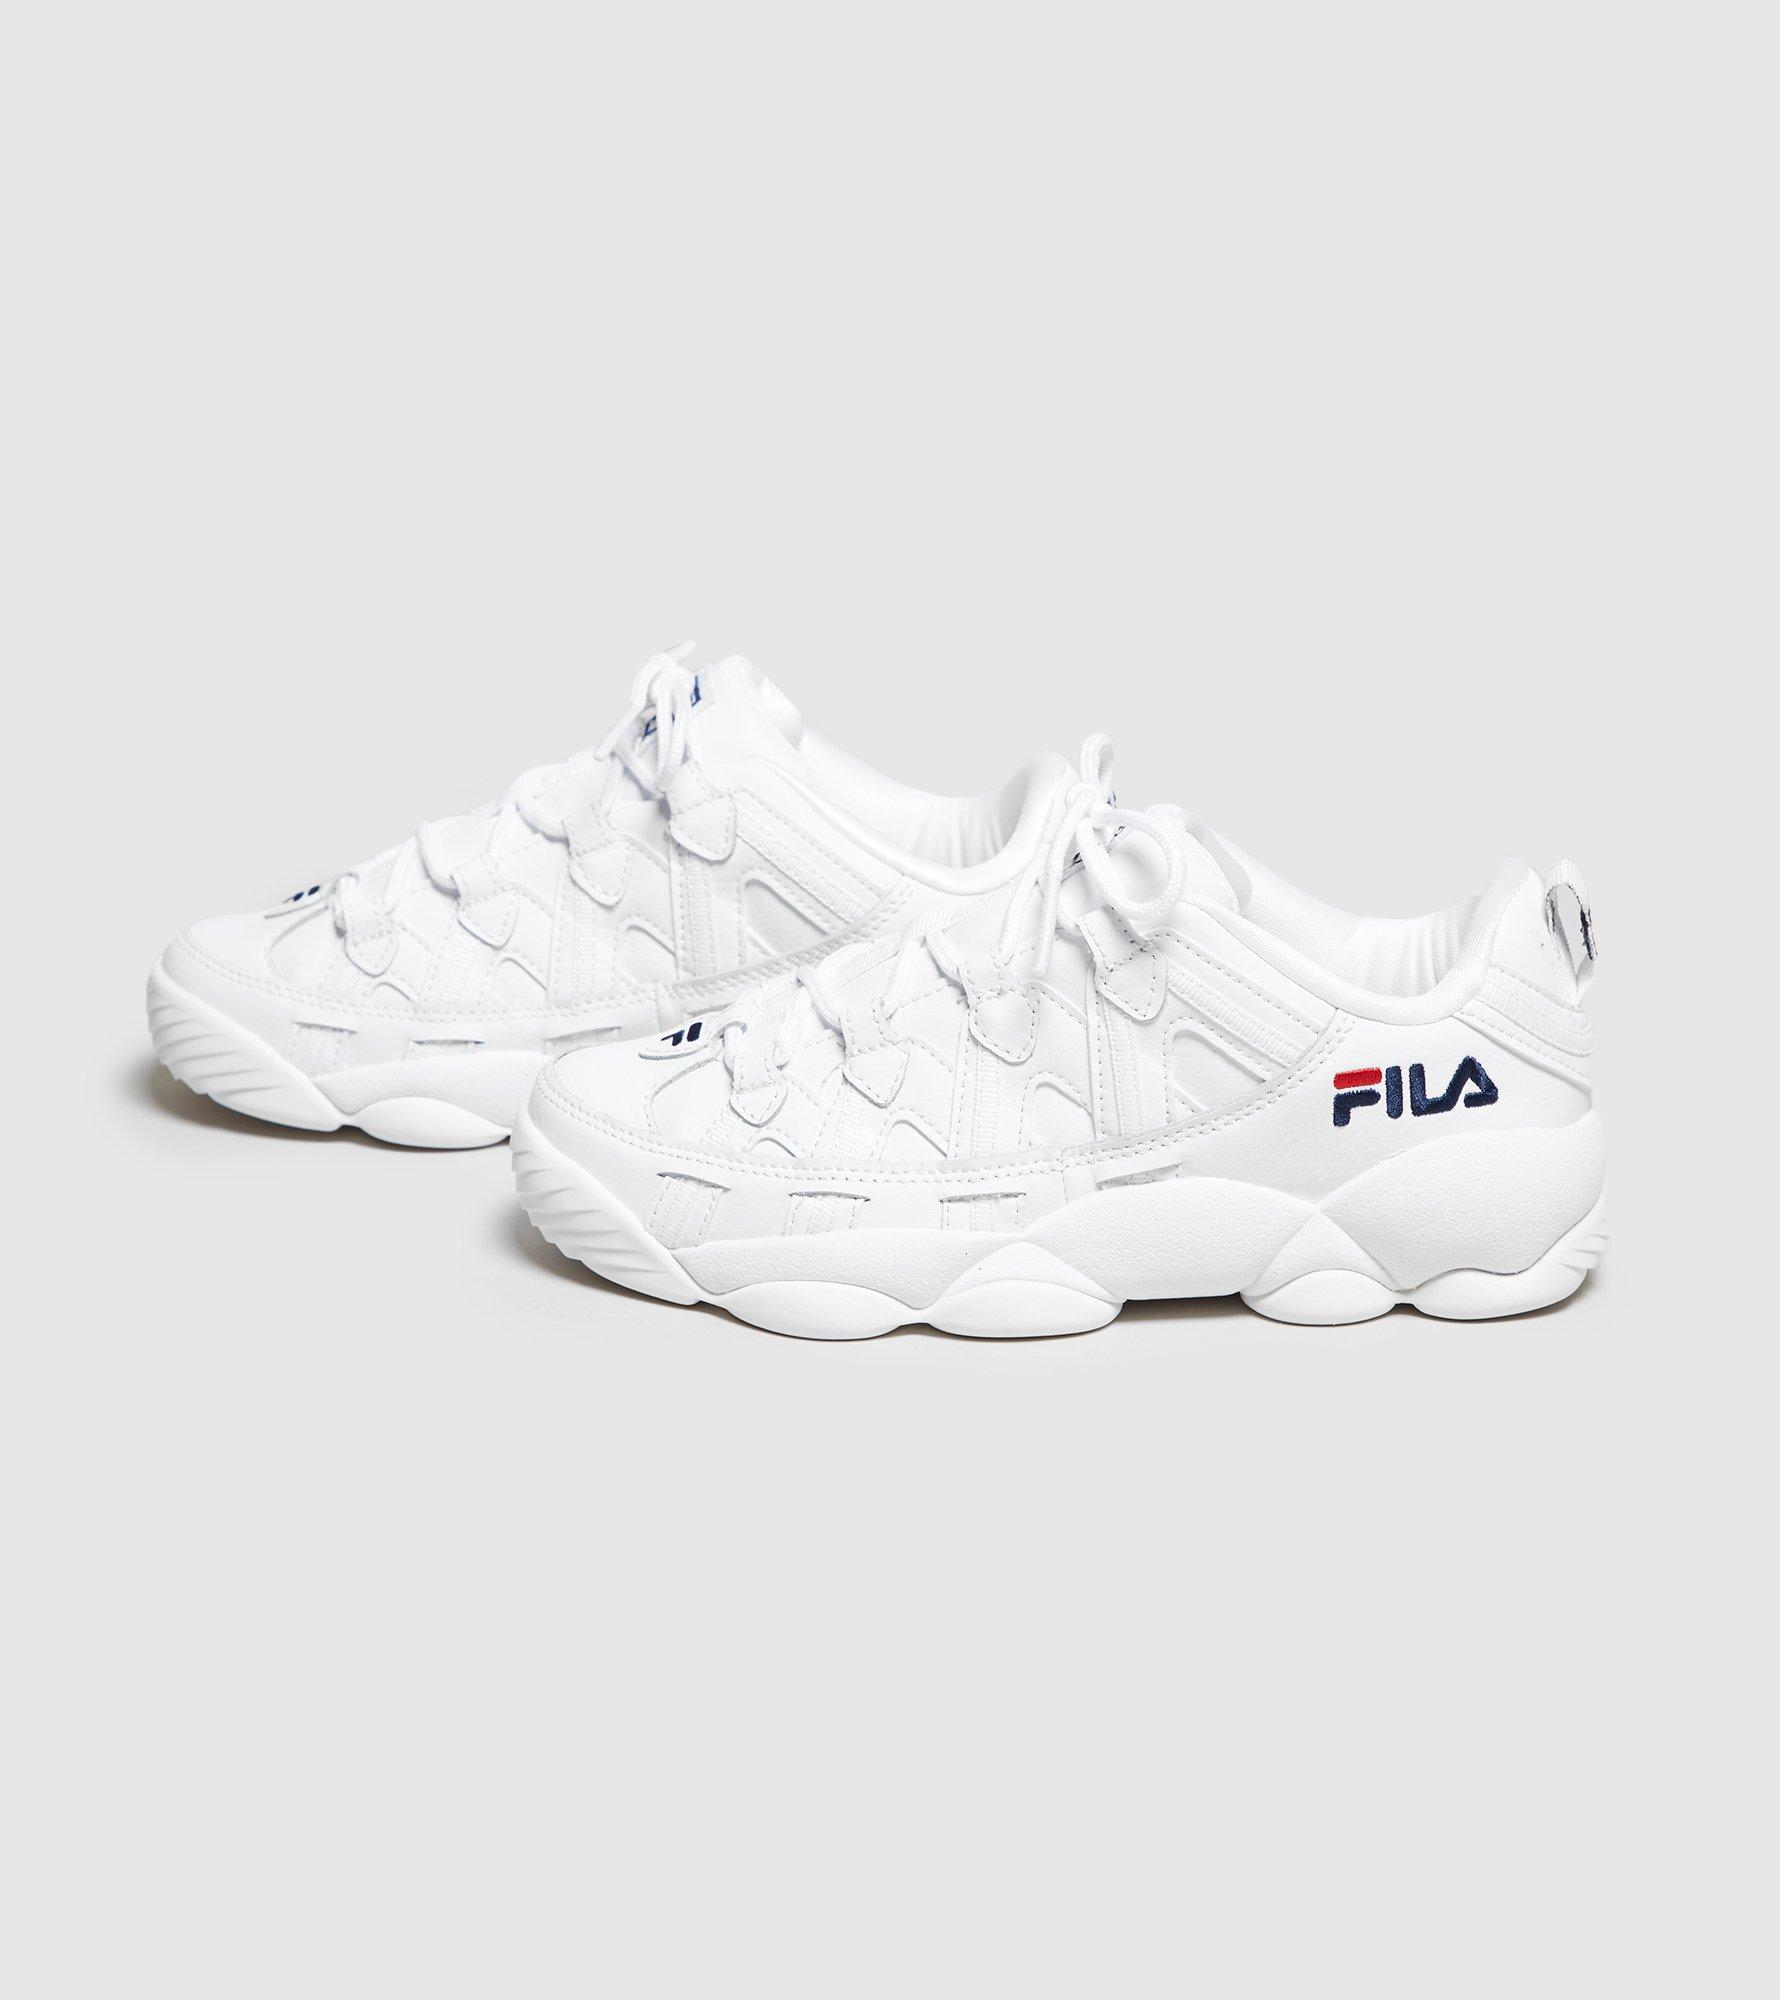 Fila White Spaghetti Low Women's